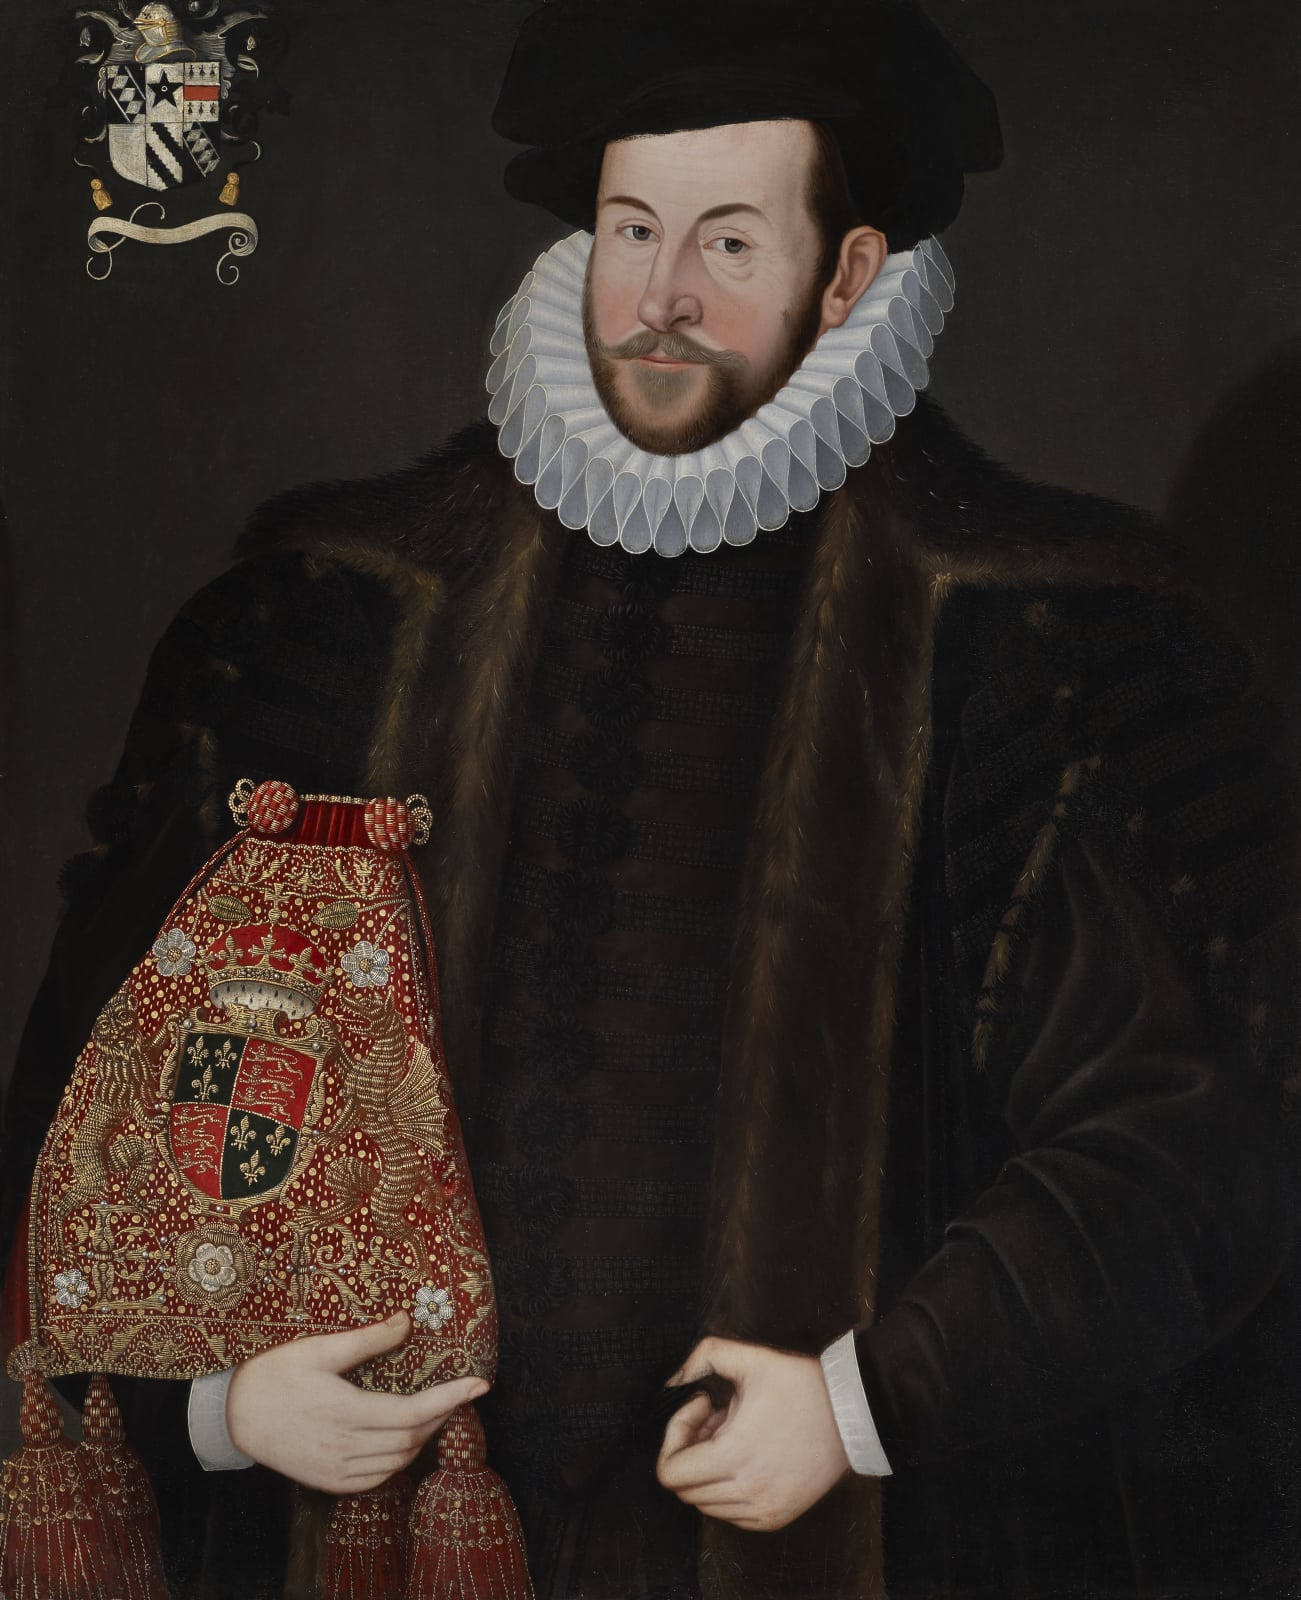 Sir John Puckering of Kew, Surrey and Weston (c. 1544 – 1596), Speaker of the House of Commons and Lord Keeper of the Privy Seal